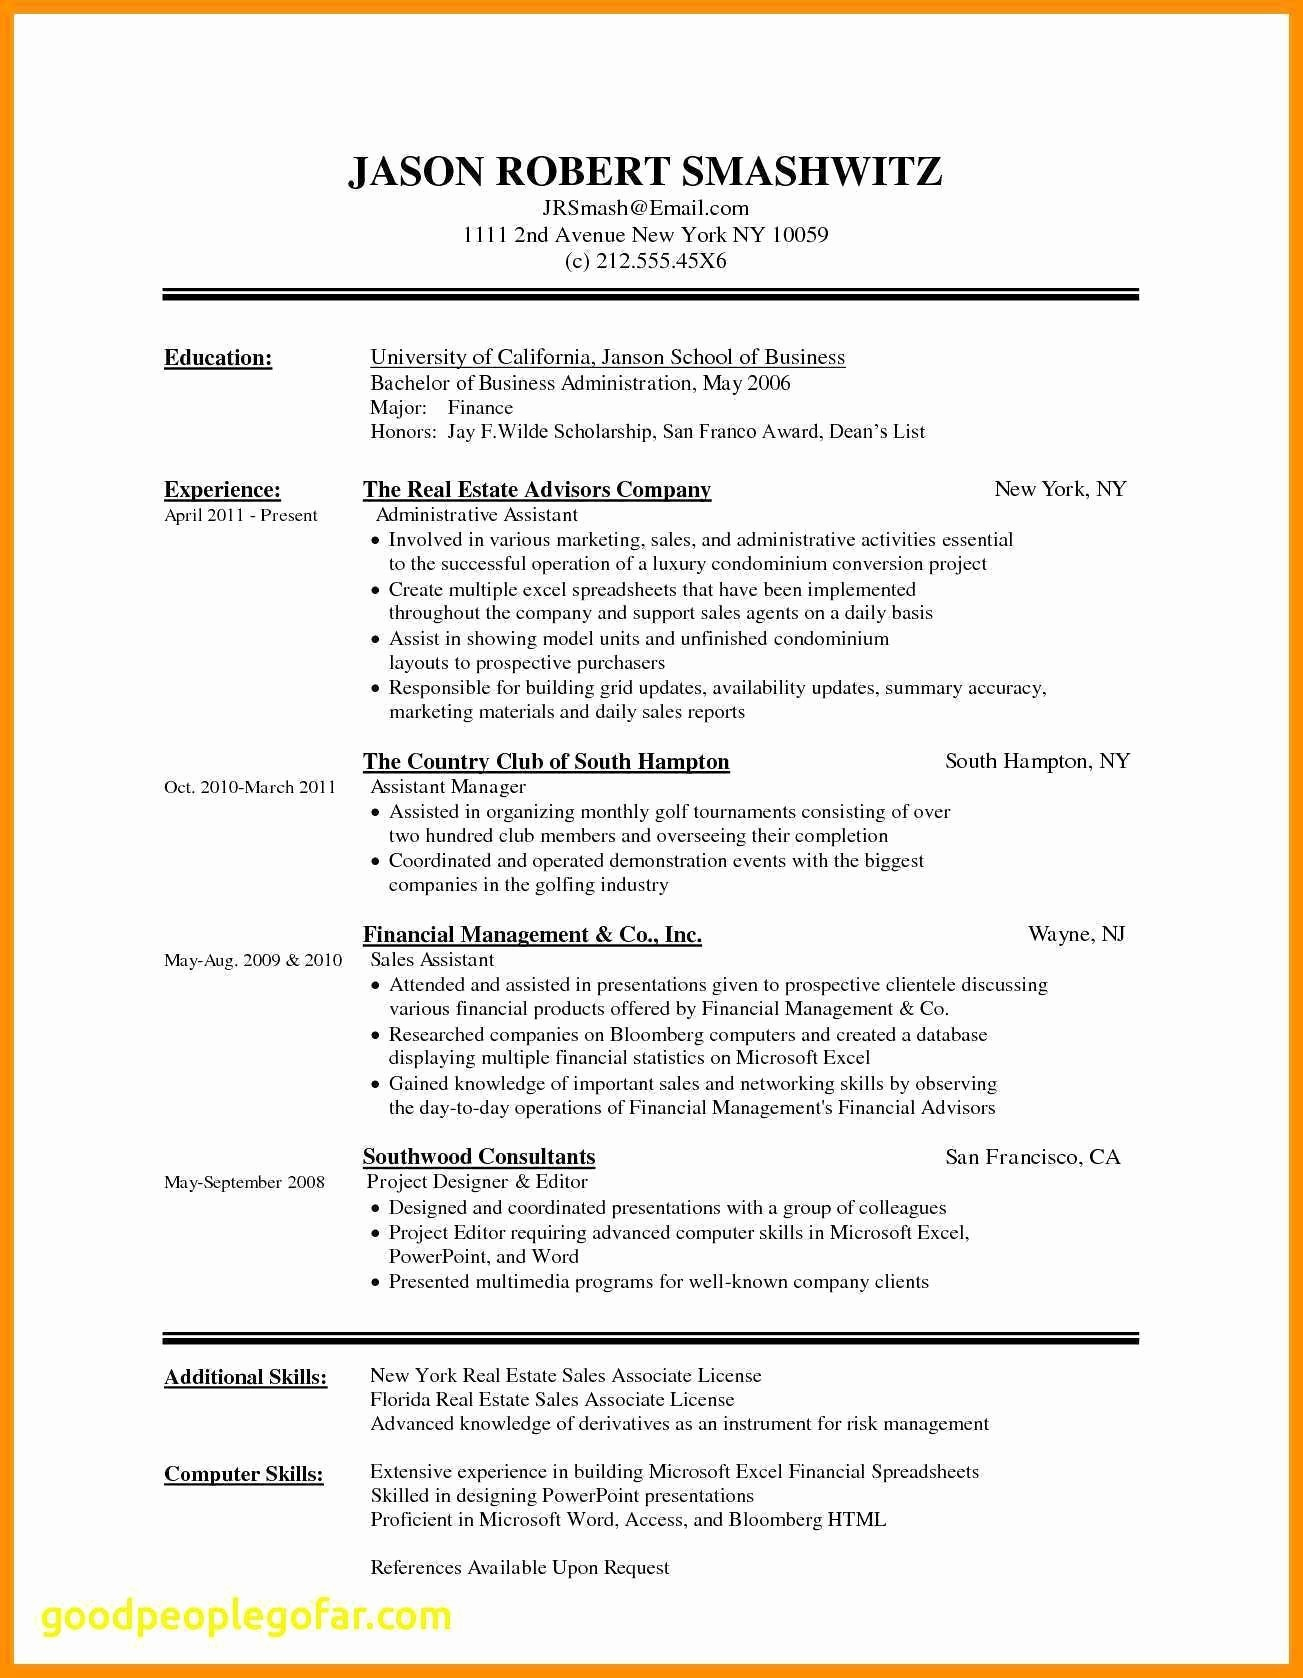 Cover Letter Template for Teaching assistant - Teacher assistant Resume Luxury Fresh Teacher Resume Template 2018